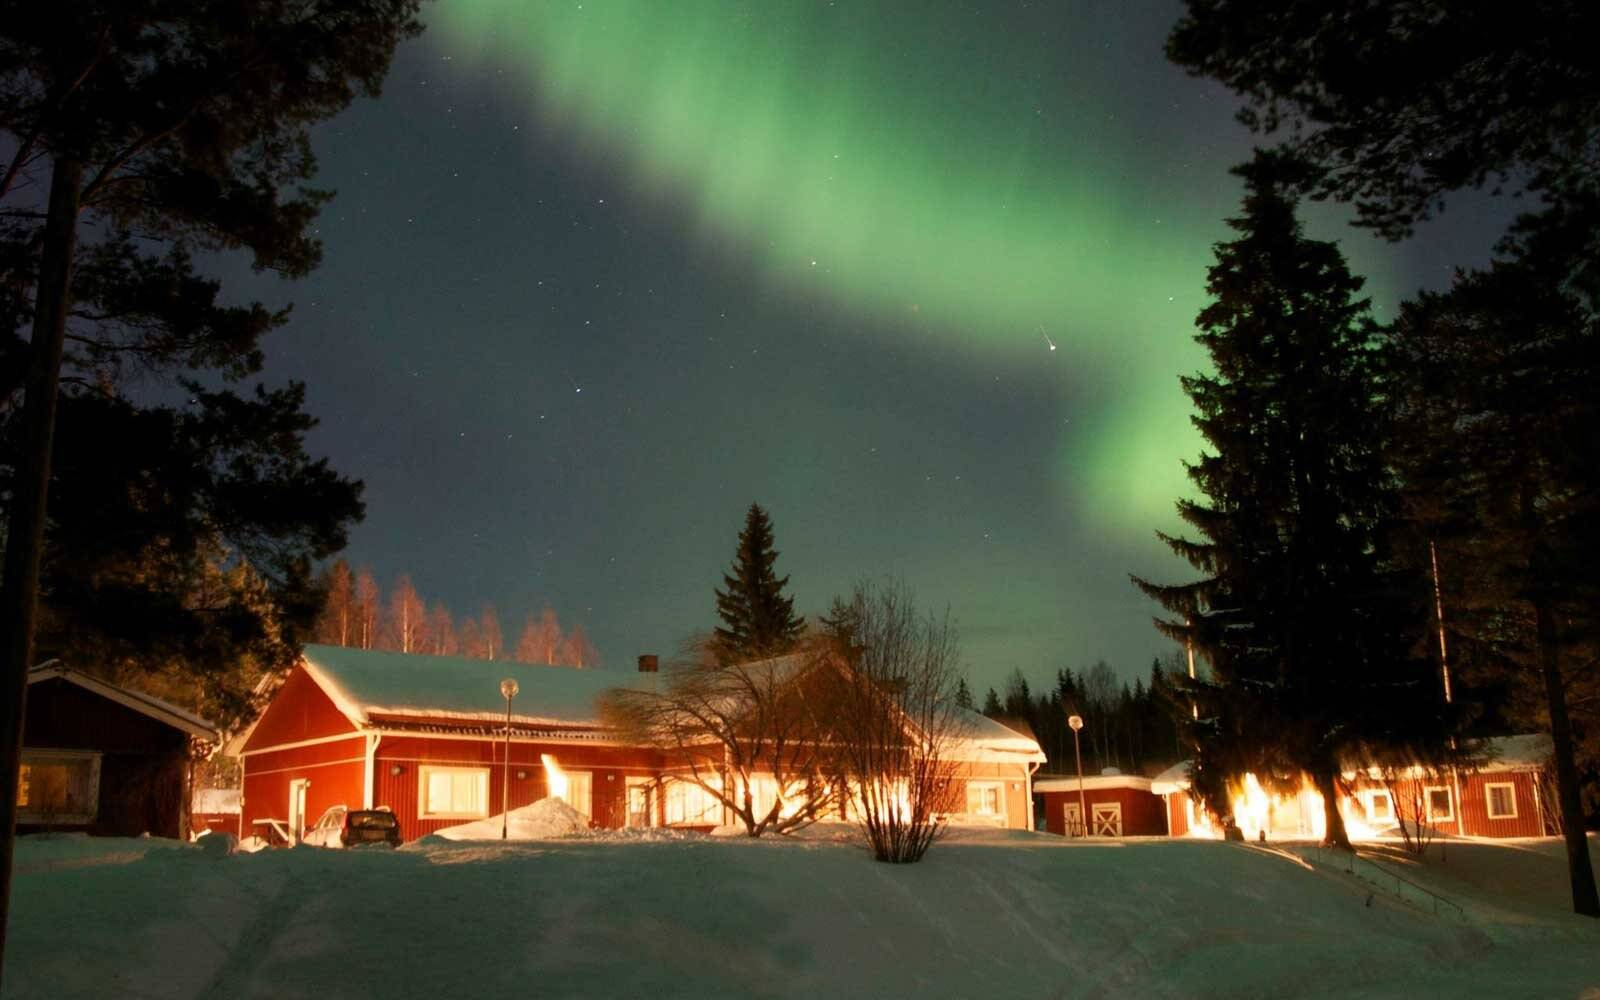 Pine Bay Lodge hotel in Sweden